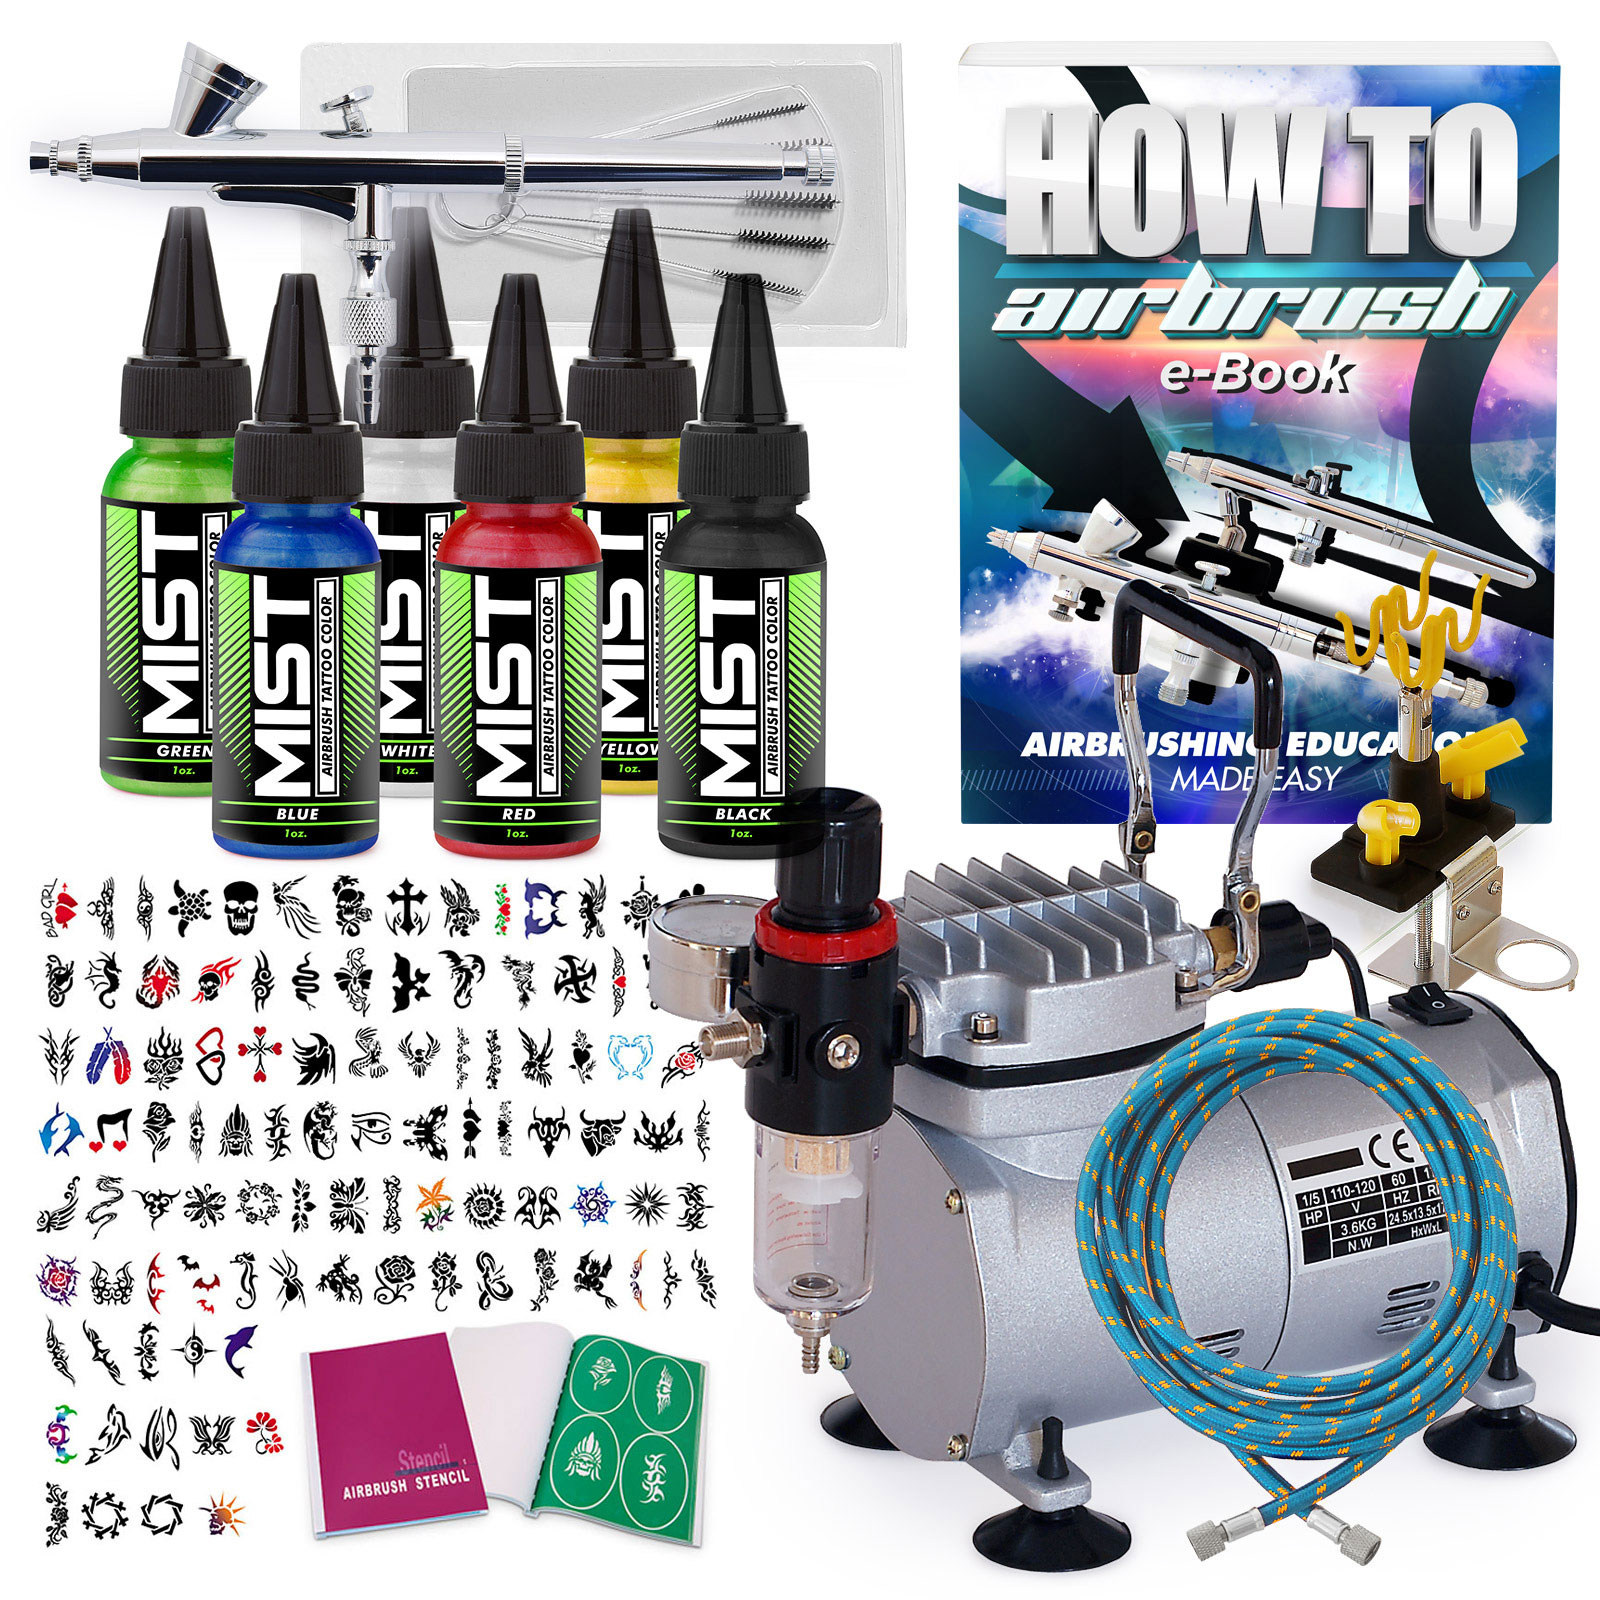 PointZero Complete Temporary Tattoo Airbrush Set - 6 Colo...